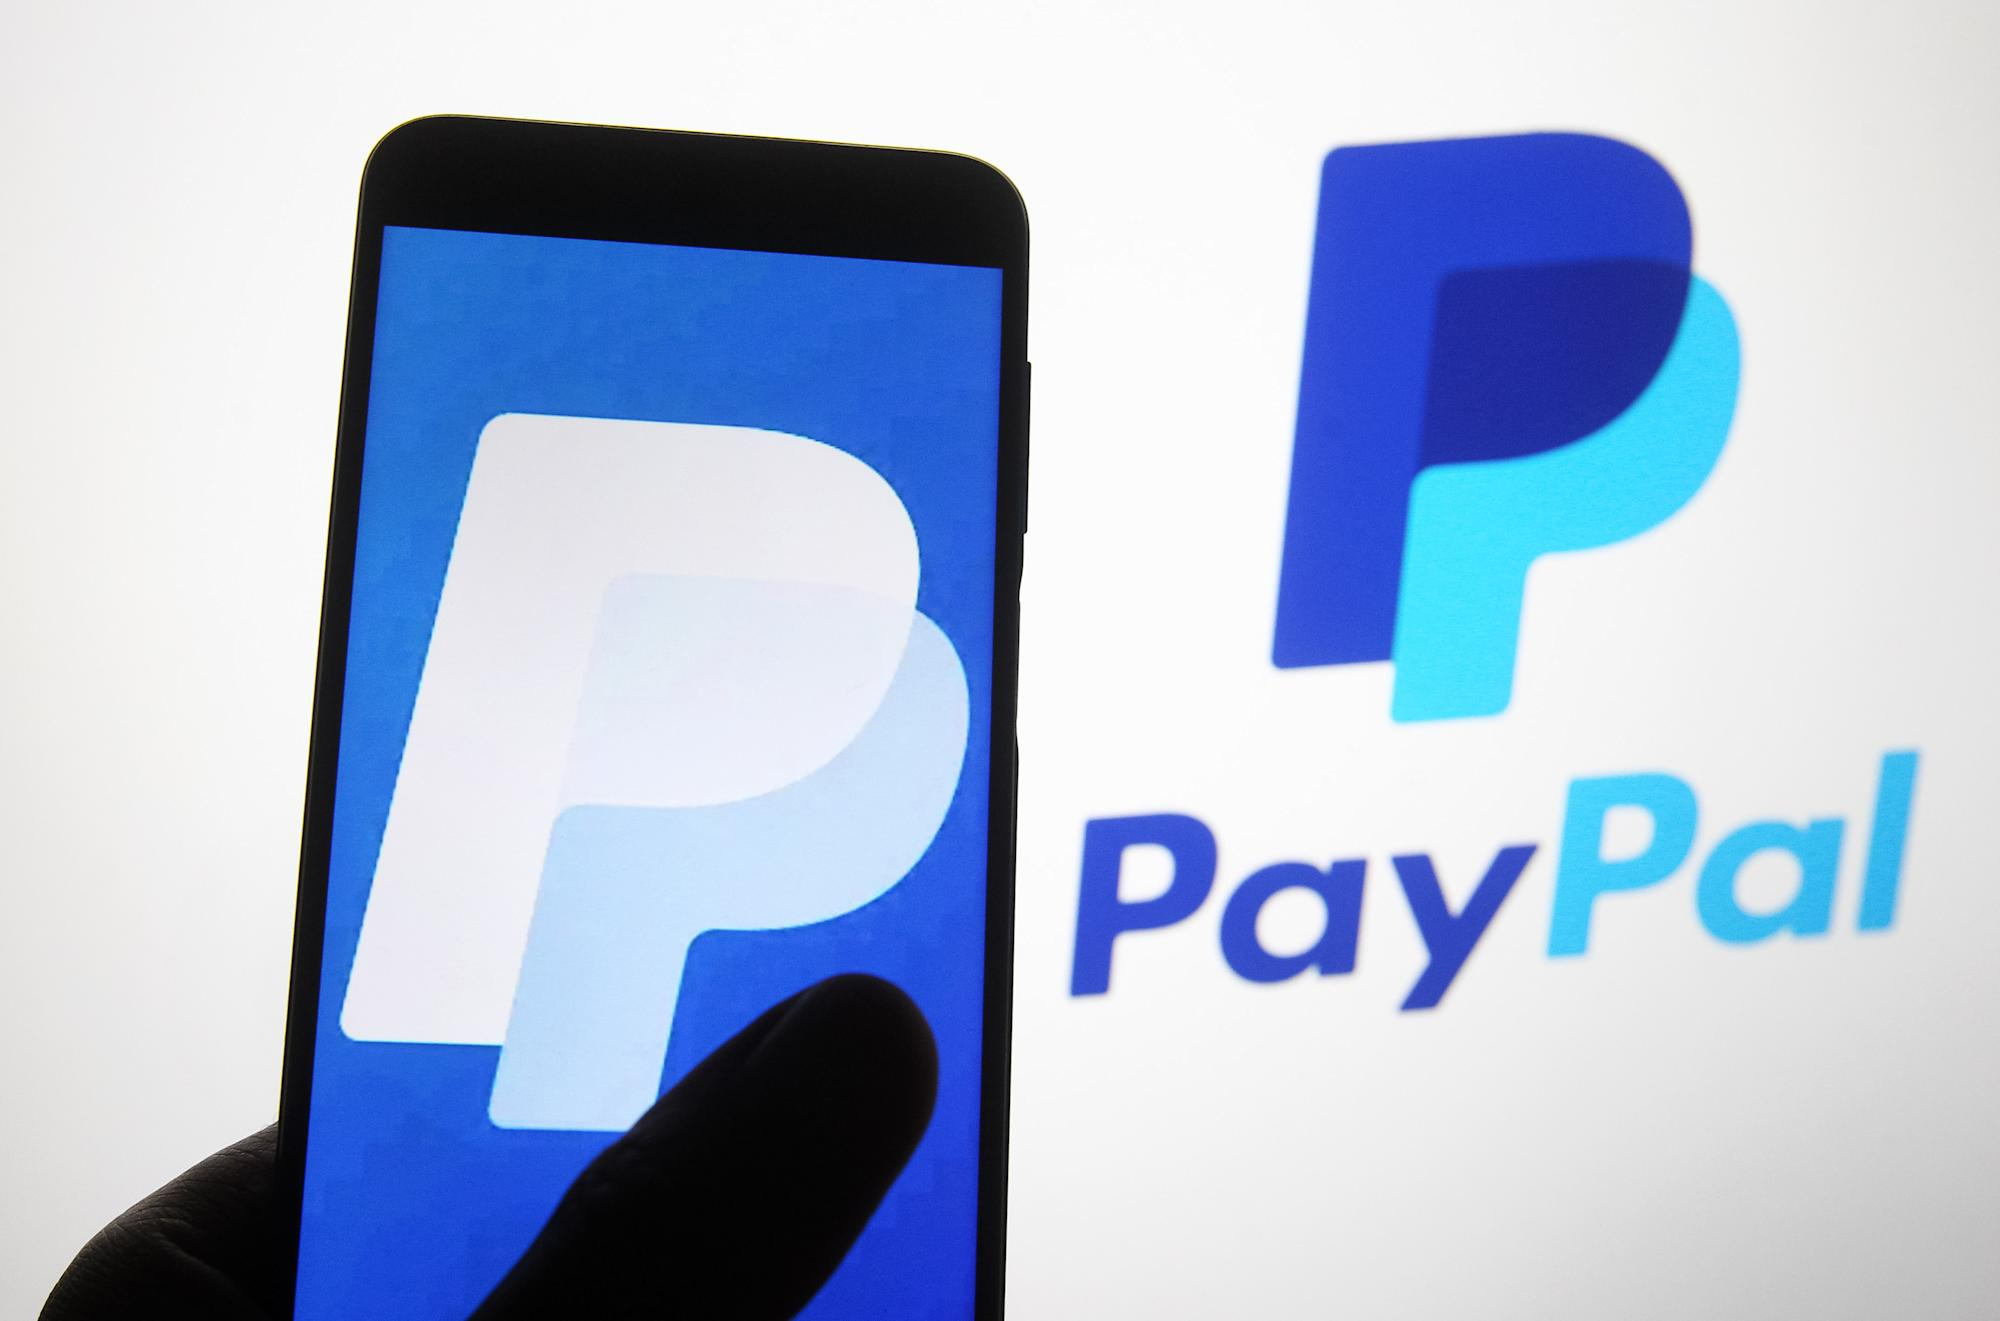 Paypal betting sites uk yahoo app to bet on kentucky derby